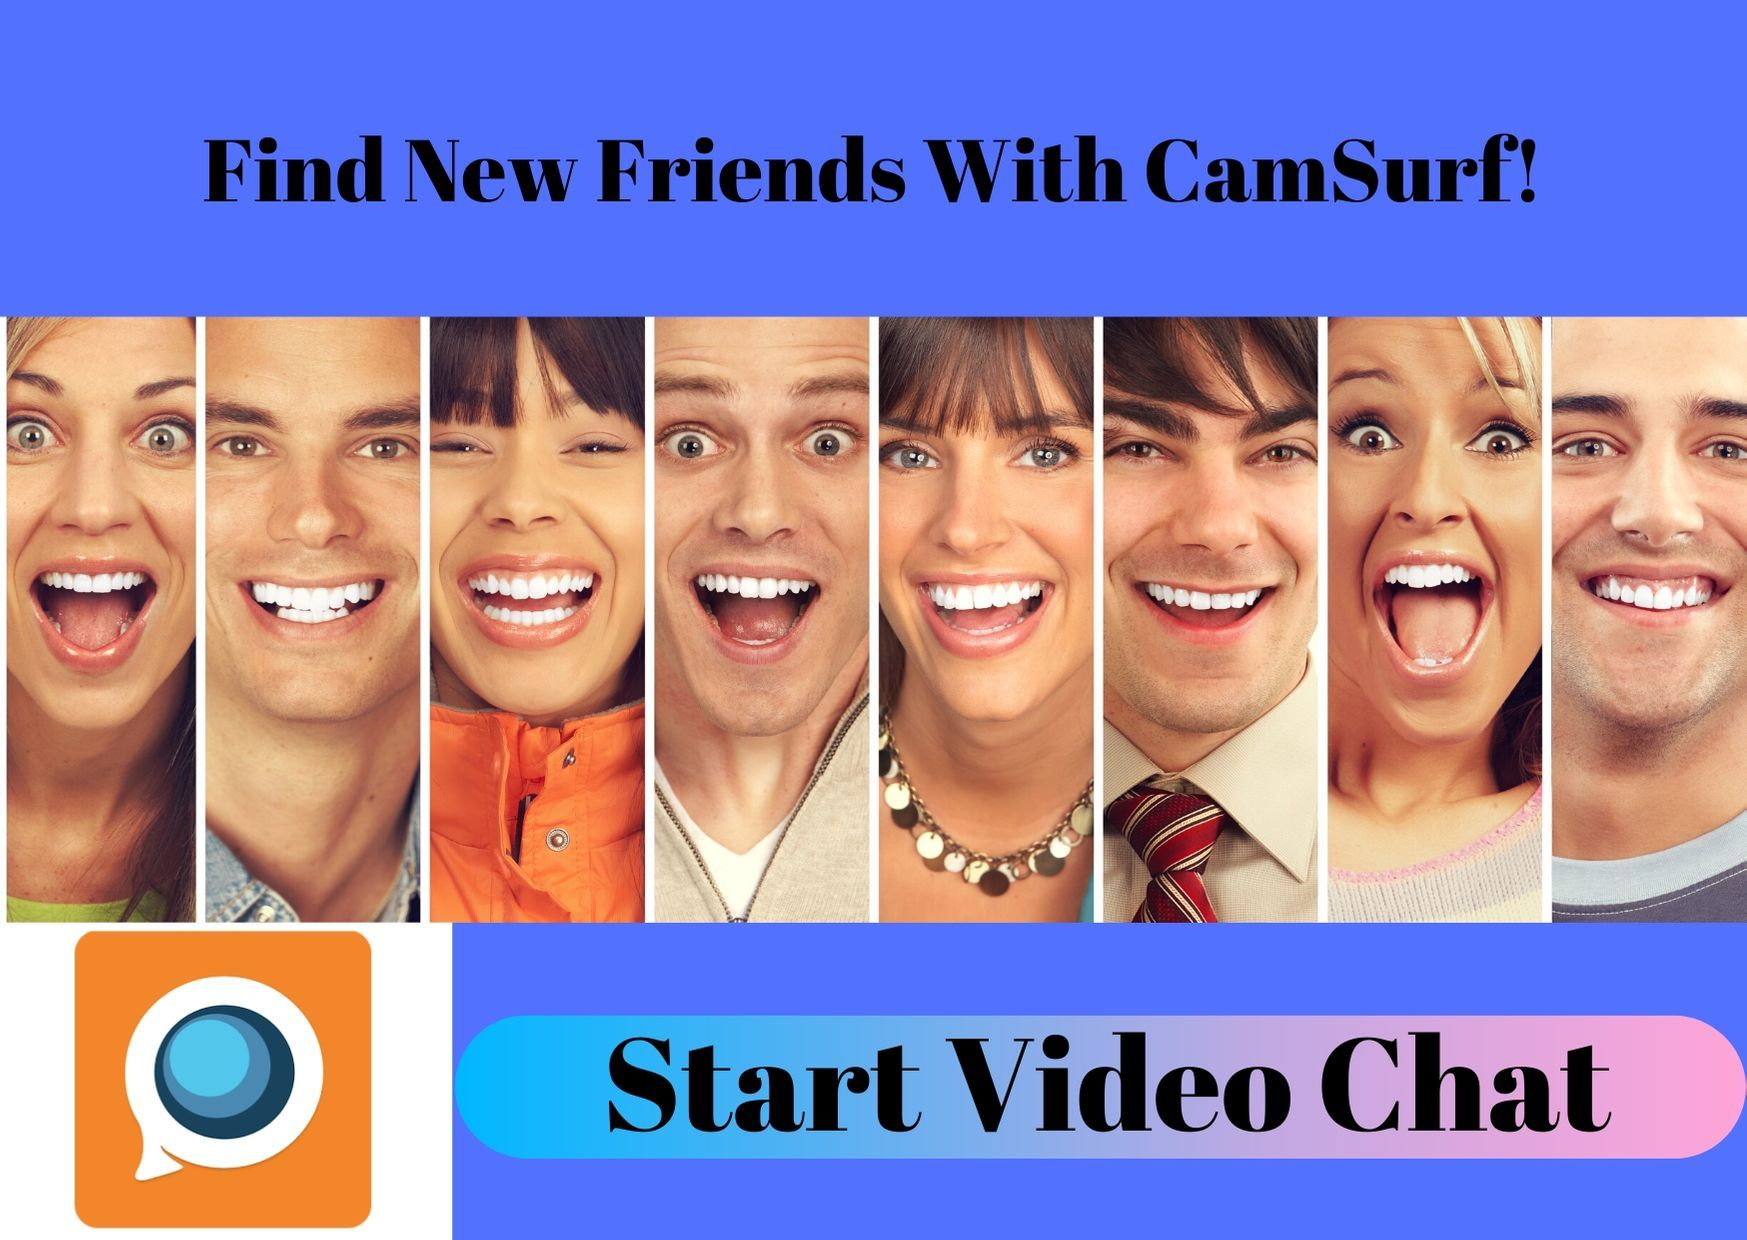 Find new friends for random video chat. Talk to strangers